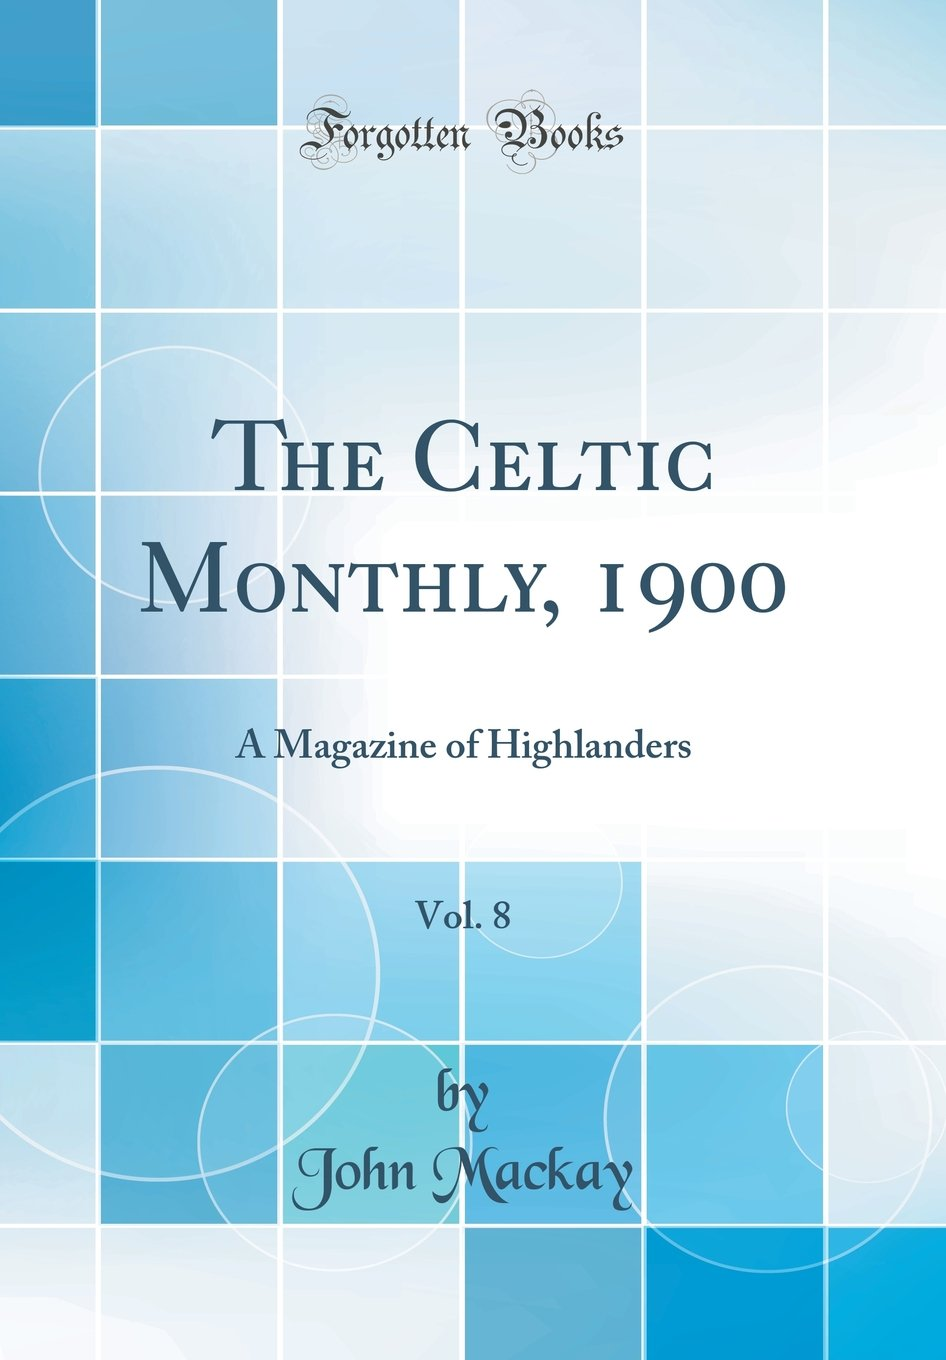 The Celtic Monthly, 1900, Vol. 8: A Magazine of Highlanders (Classic Reprint) ebook